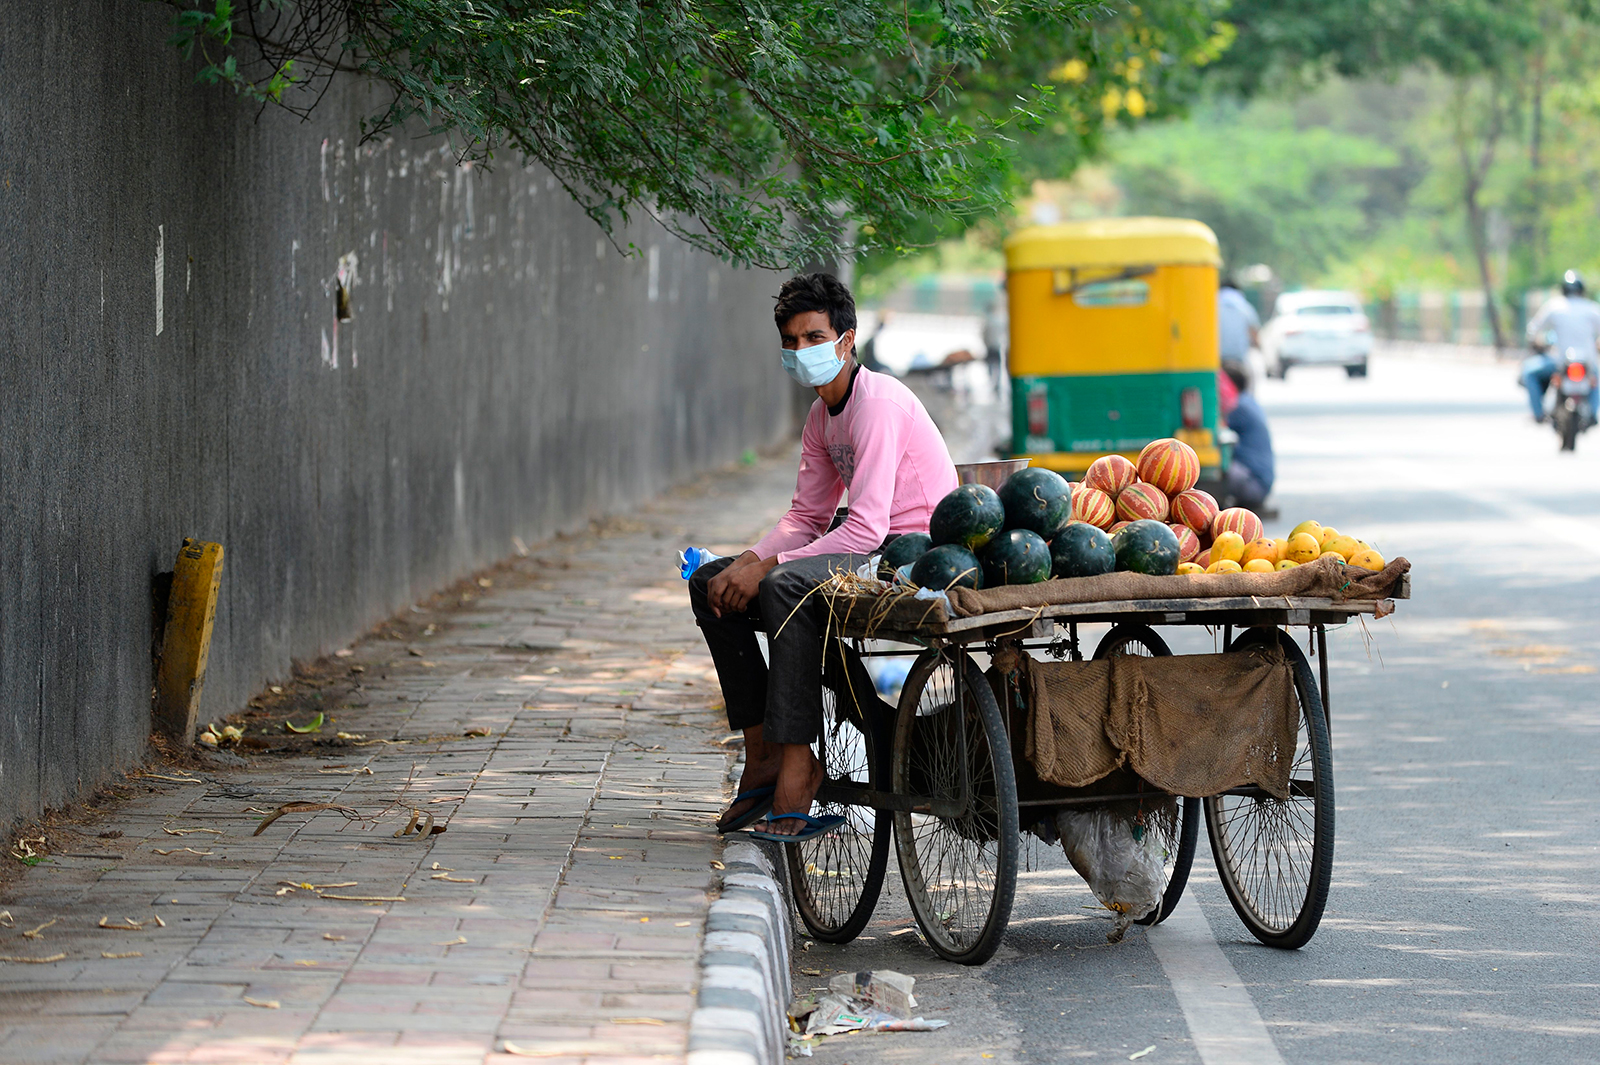 A fruit vendor waits for customers in New Delhi on May 31.